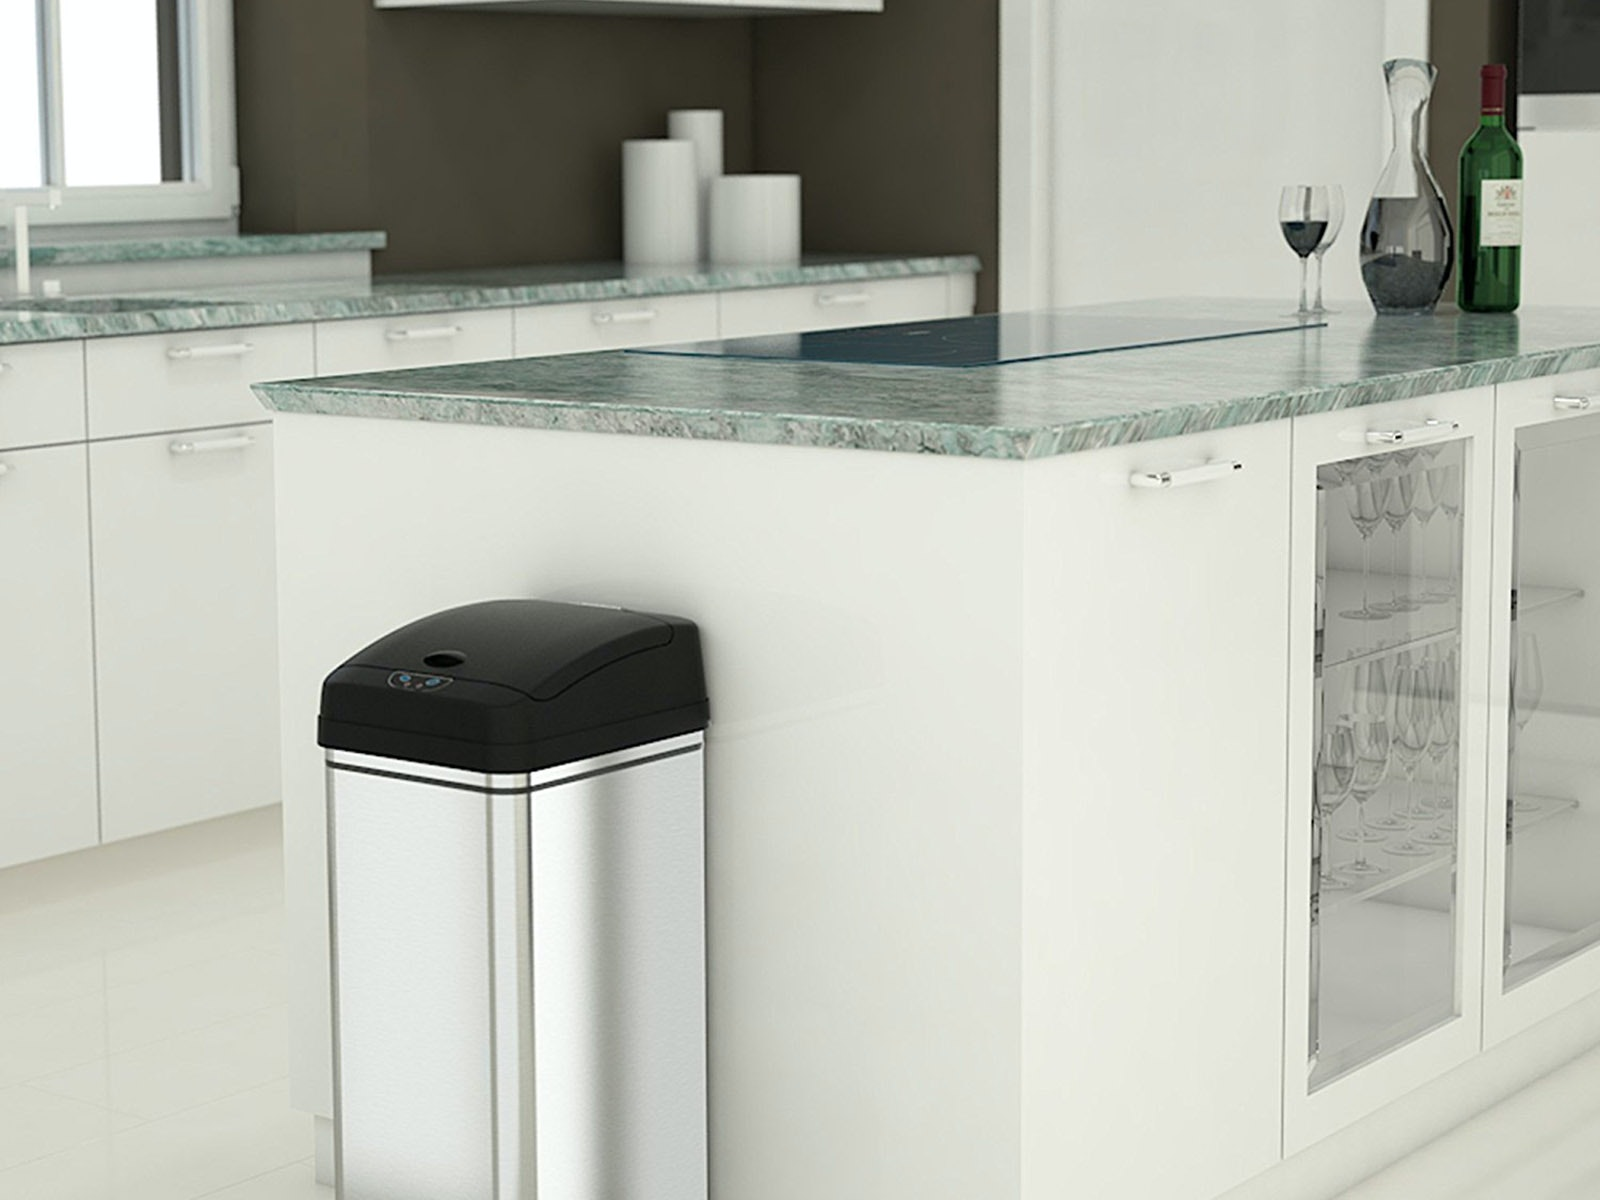 Thisdeodorizing trash can that you never need to touch, ever